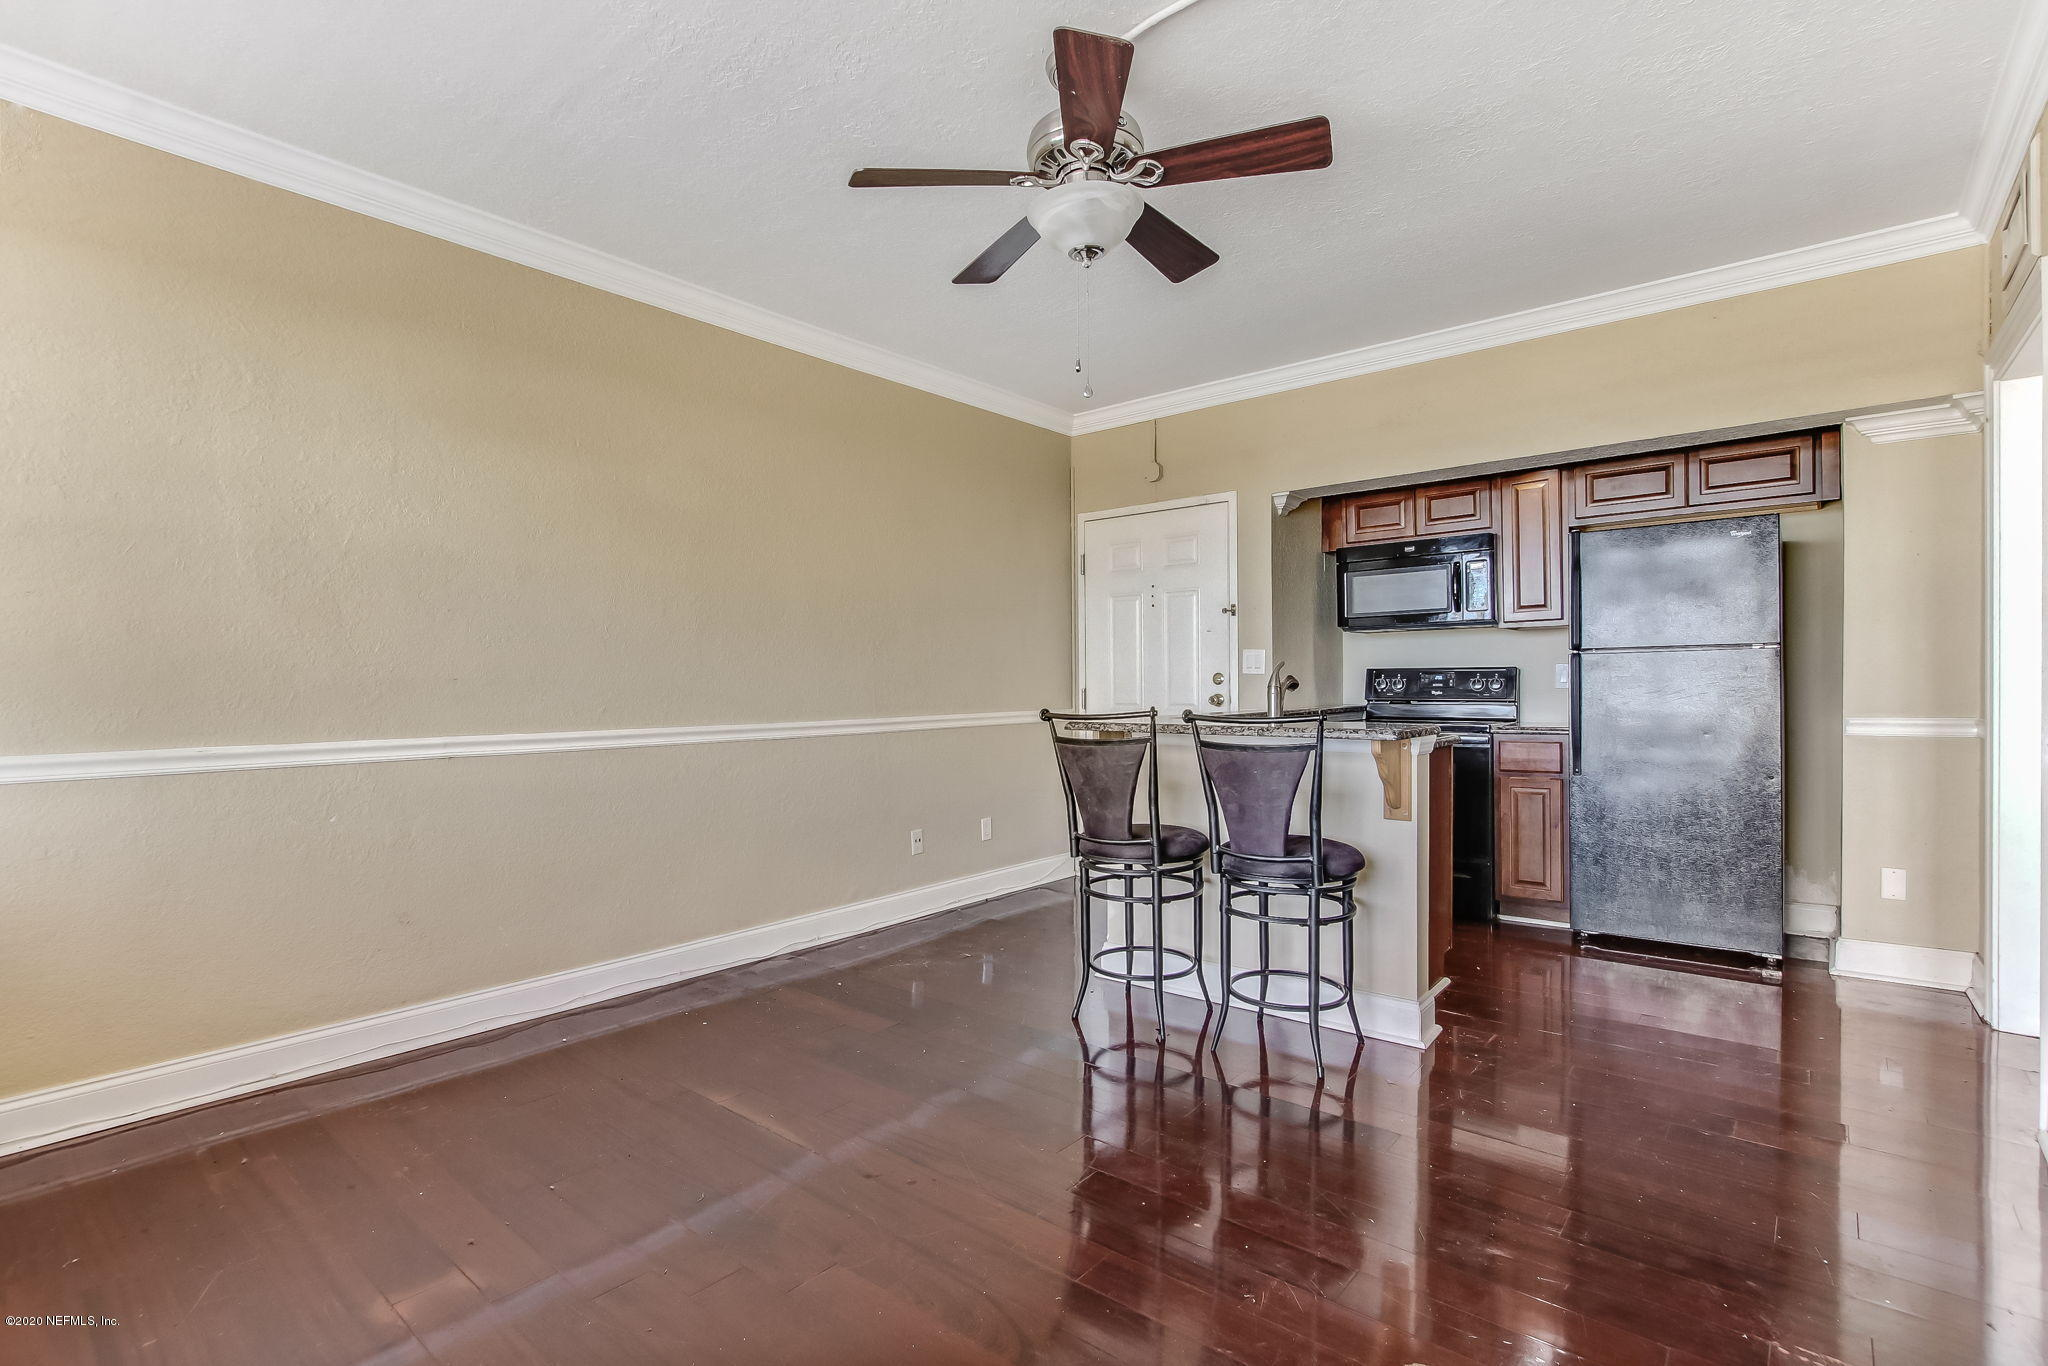 311 ASHLEY, JACKSONVILLE, FLORIDA 32202, 1 Bedroom Bedrooms, ,1 BathroomBathrooms,Investment / MultiFamily,For sale,ASHLEY,1080278